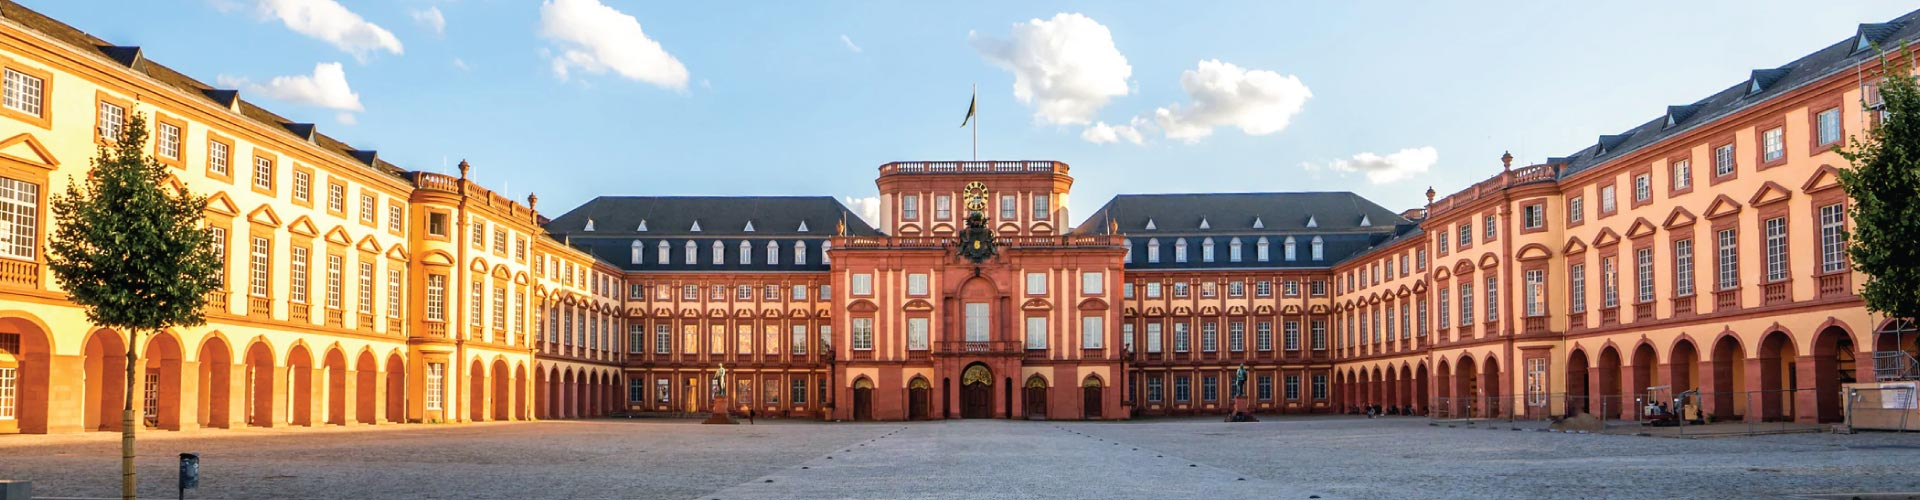 Cruise - 8d7n Legendary Rhine - Basel To Amsterdam (Crystal Cruise) - Eure05bcr08kh - R7